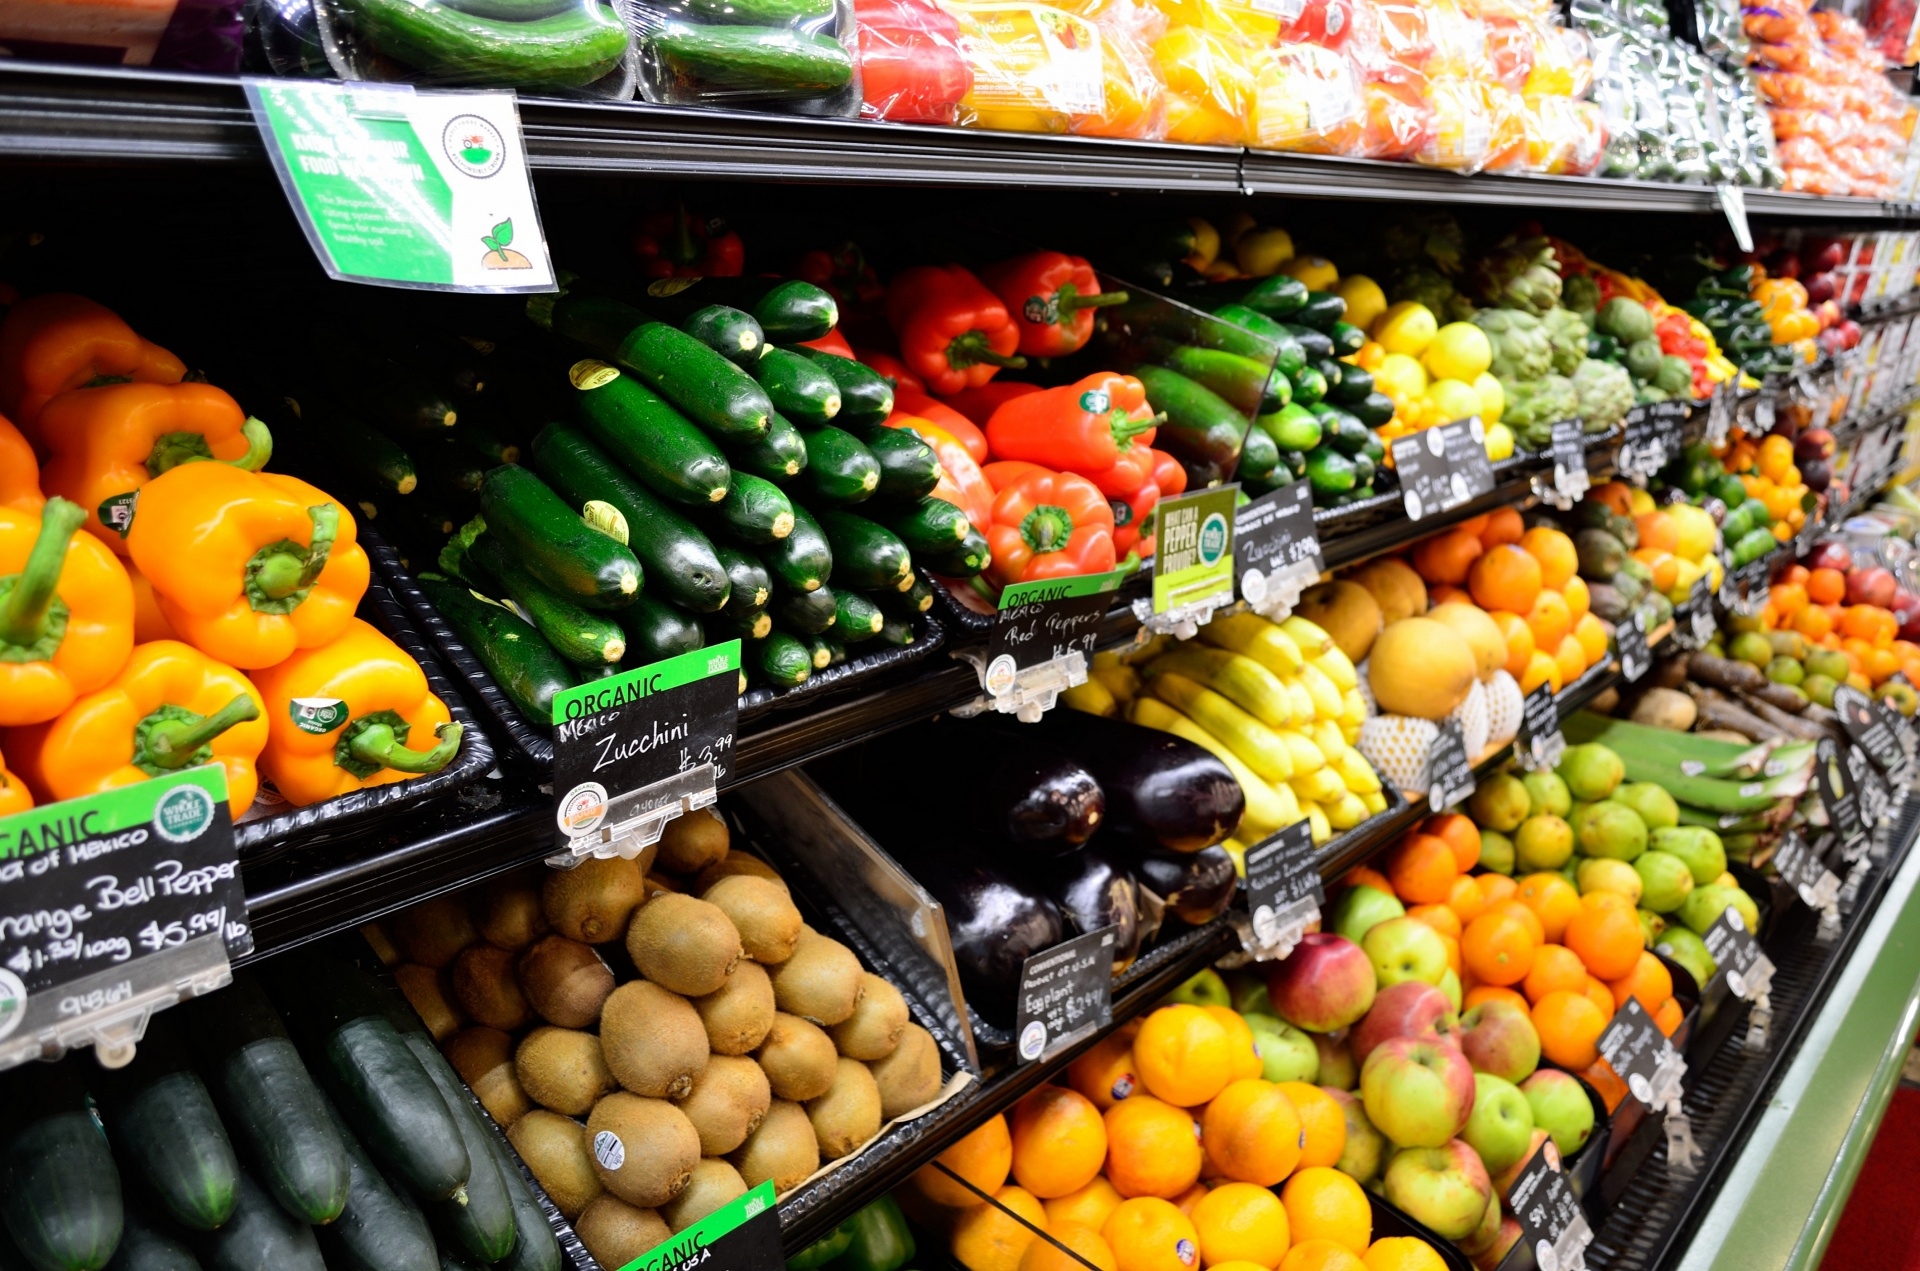 US$200bn extra spent on food and groceries in 2020 due to Covid-19